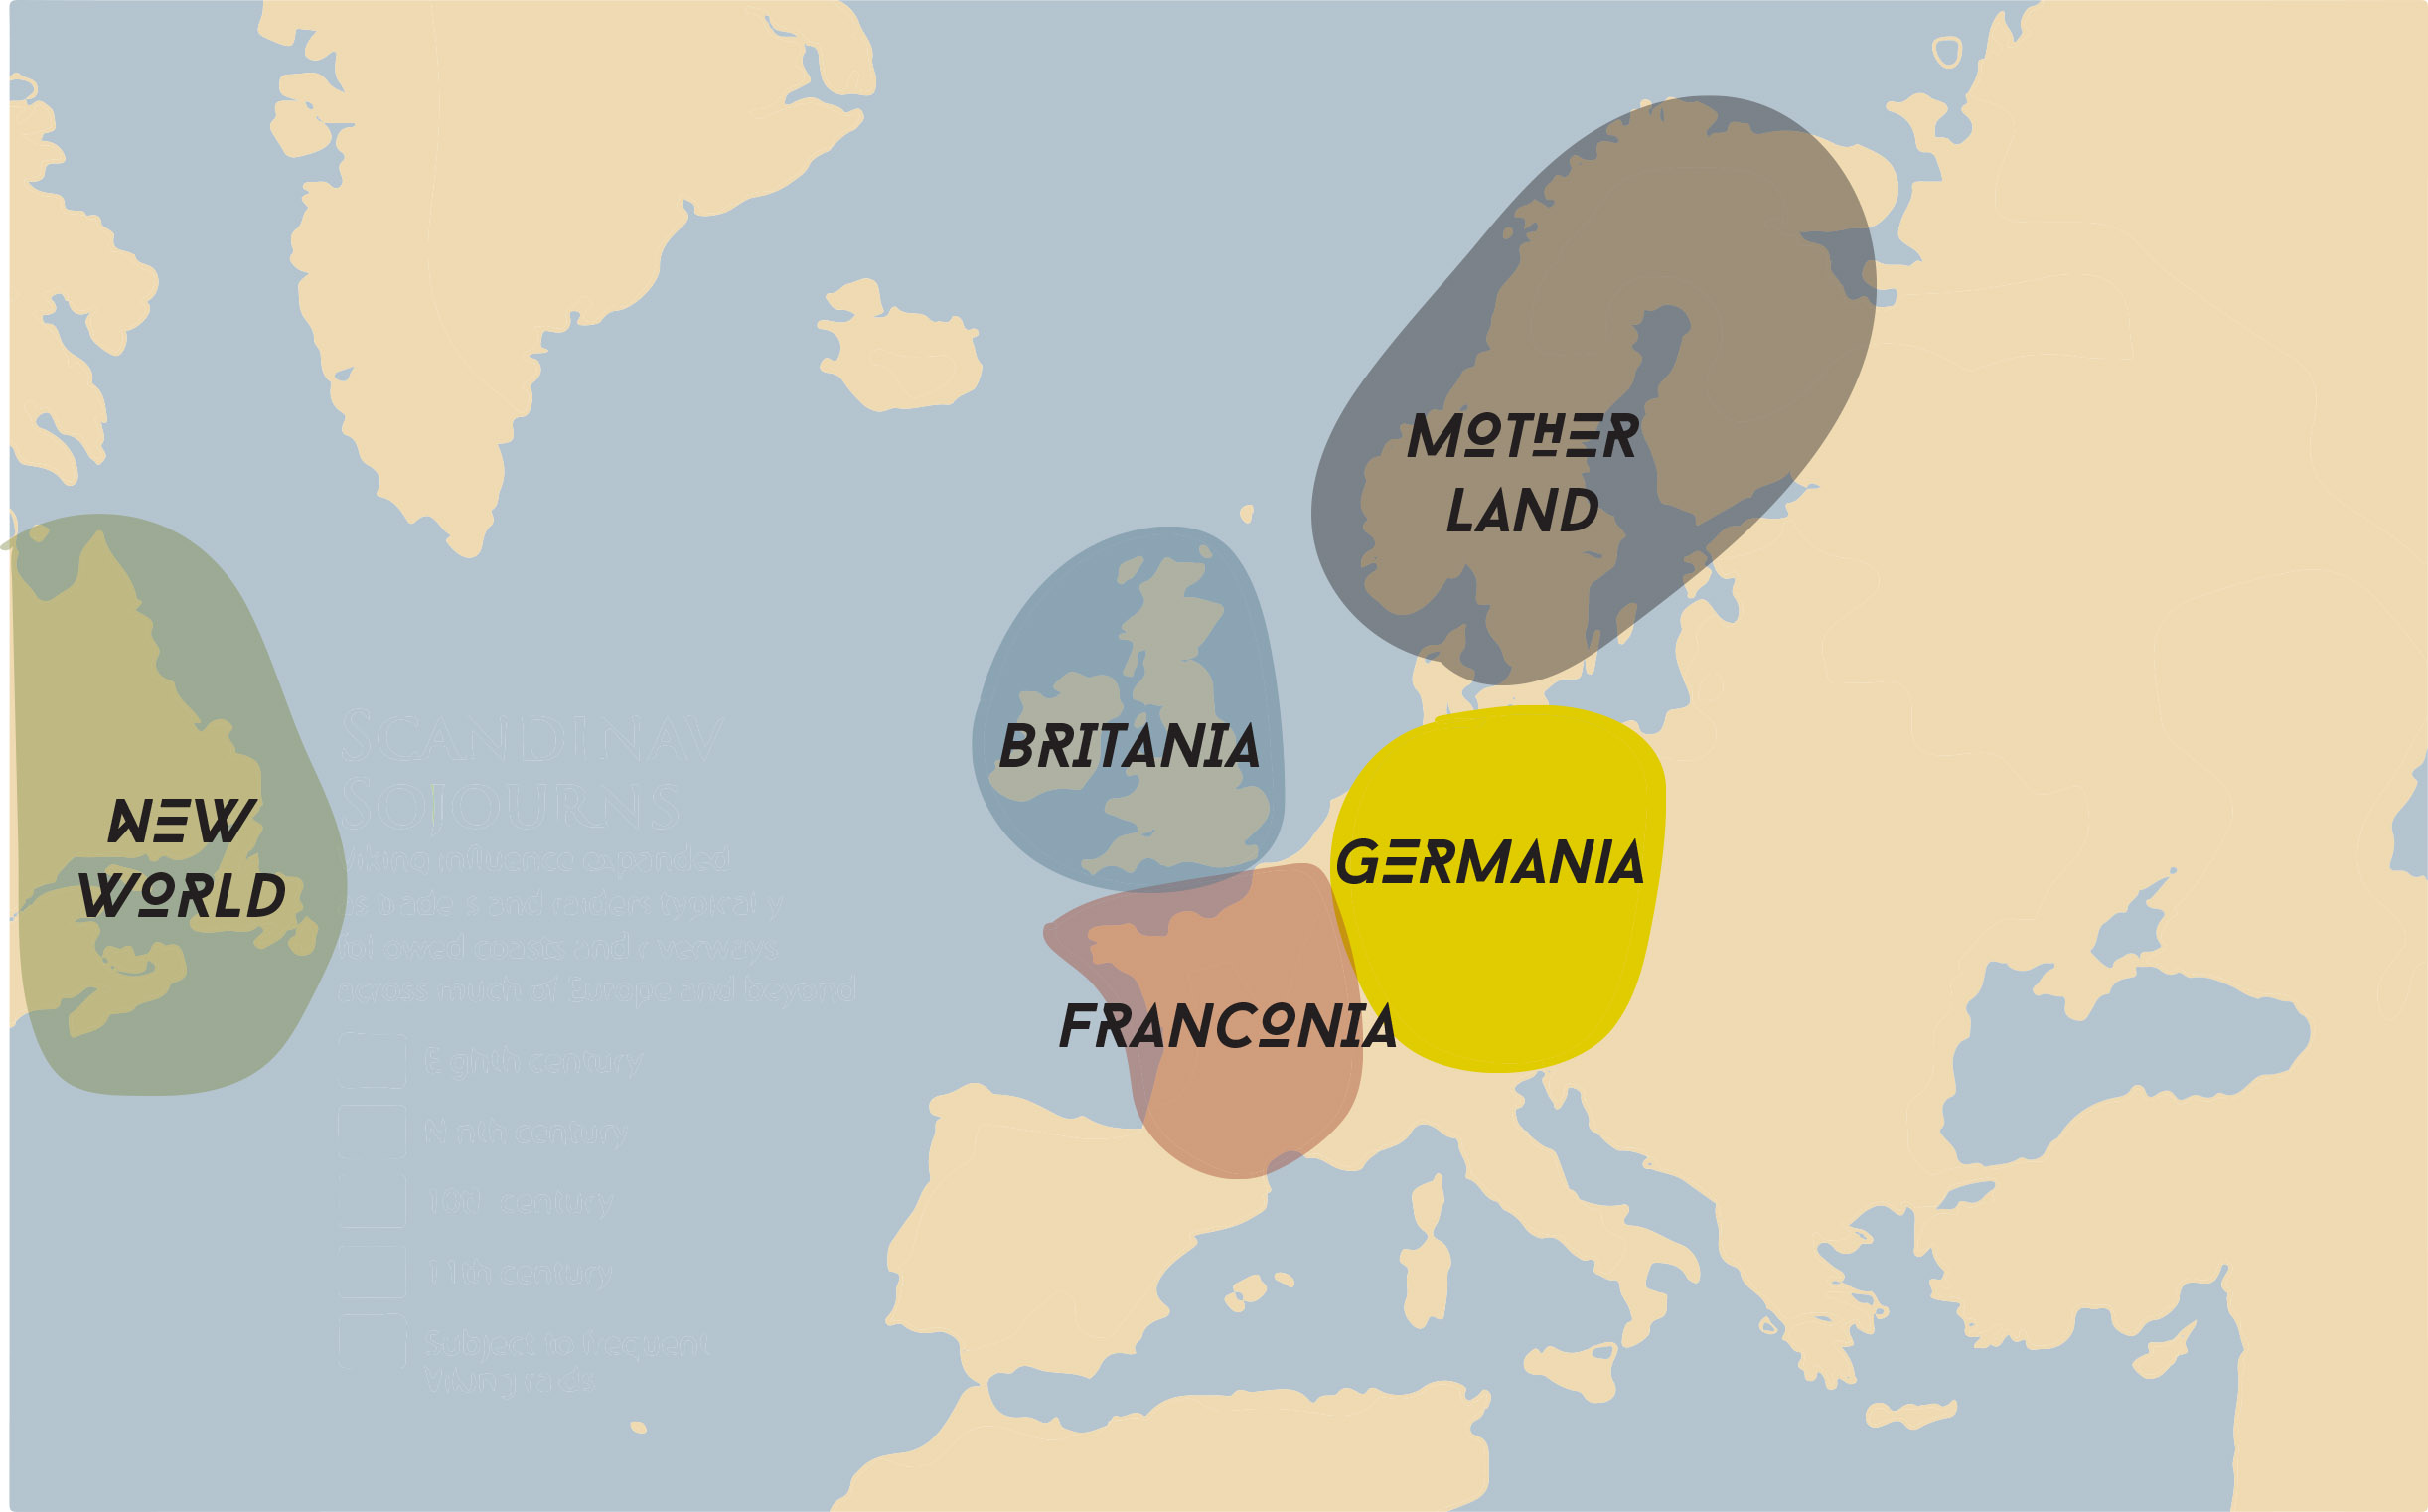 Germania map.jpg